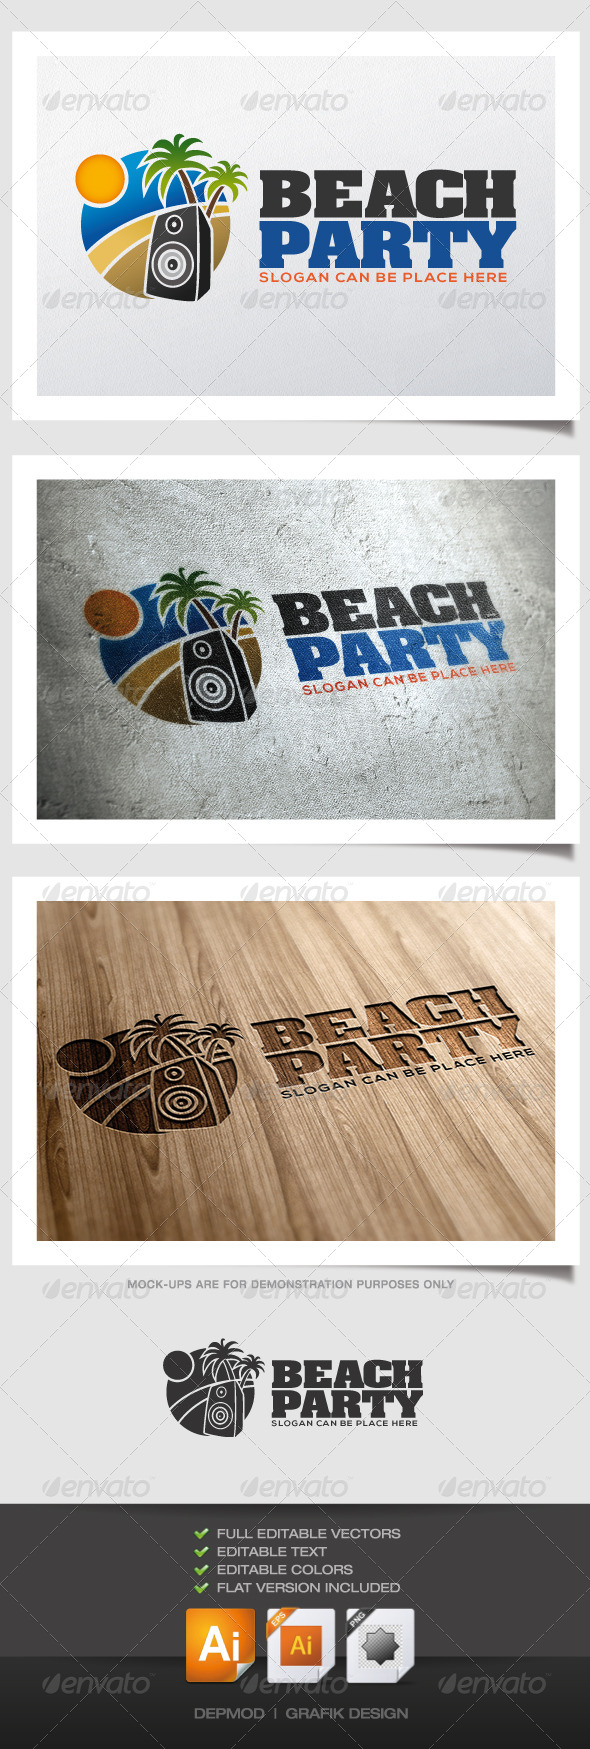 GraphicRiver Beach Party Logo 4558415